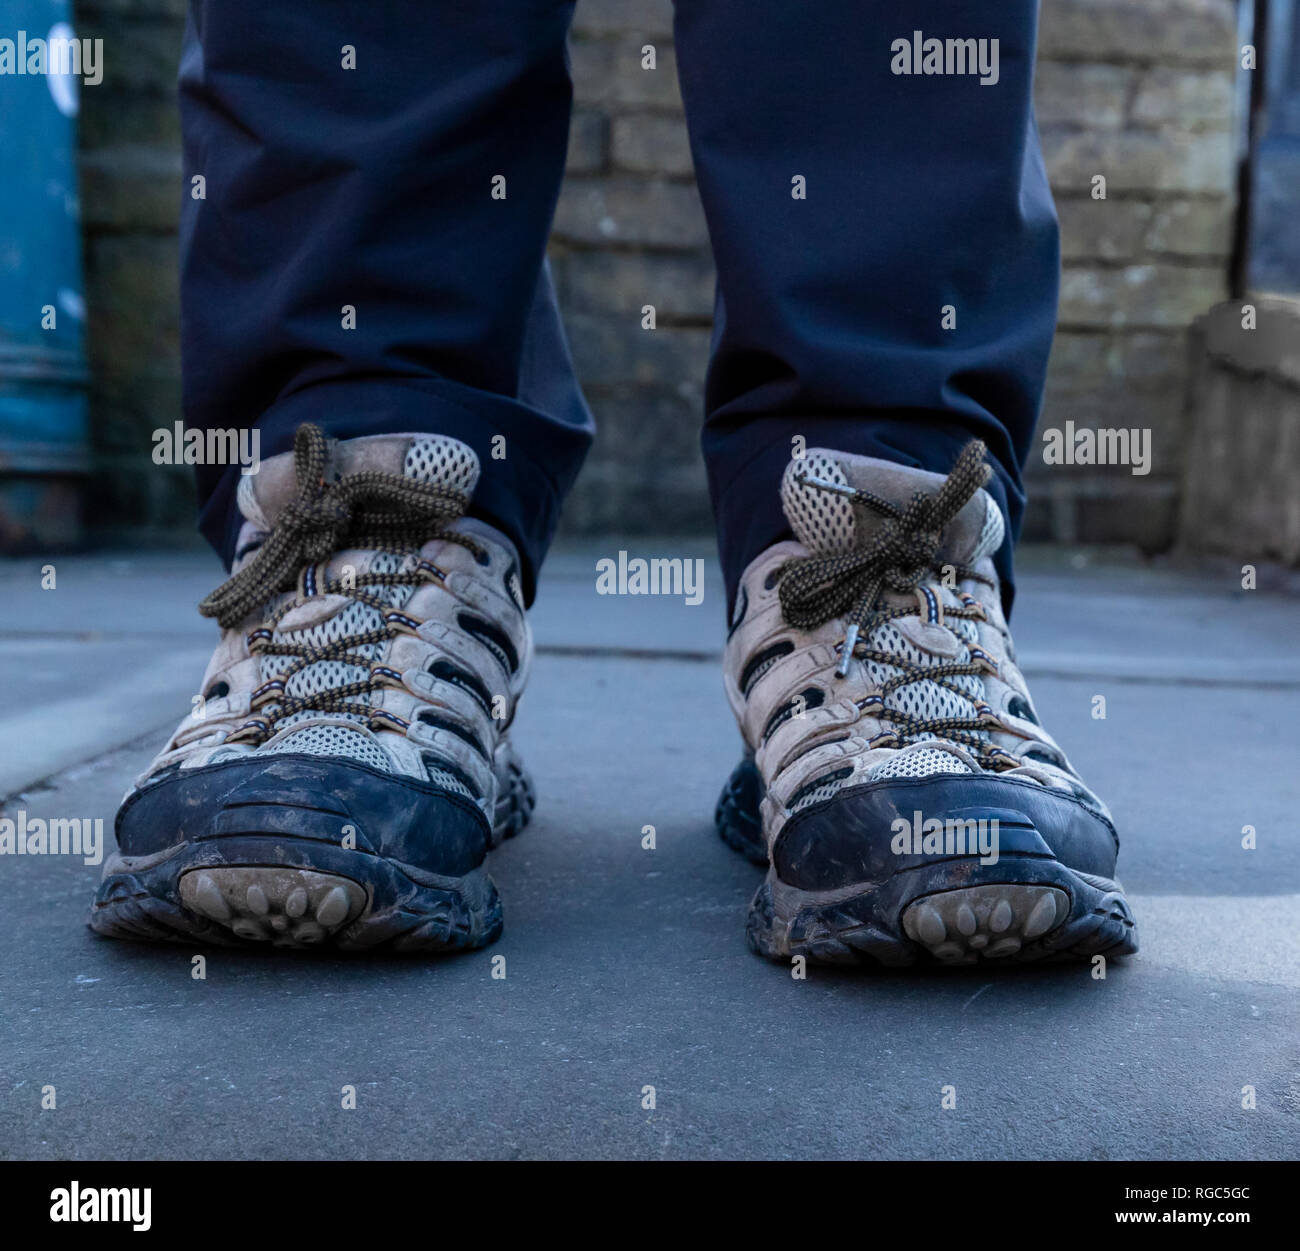 A pair of adult male feet wearing trainers. - Stock Image